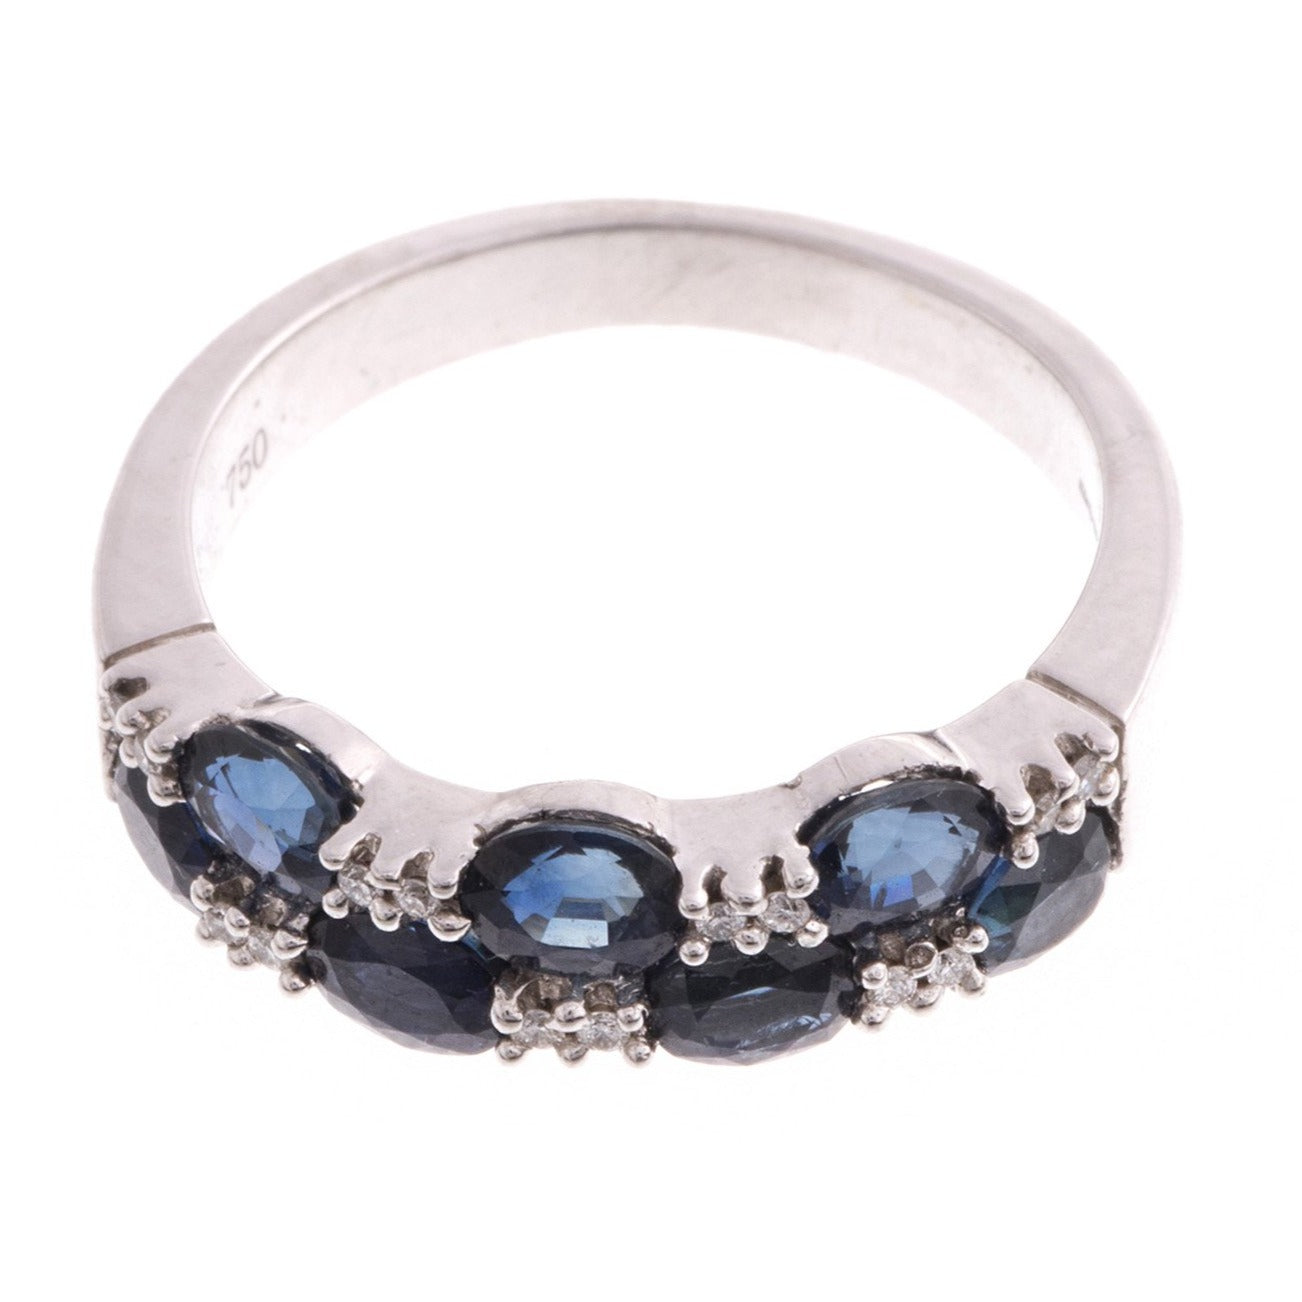 18ct White Gold Diamond & Blue Sapphire Ring, Minar Jewellers - 4